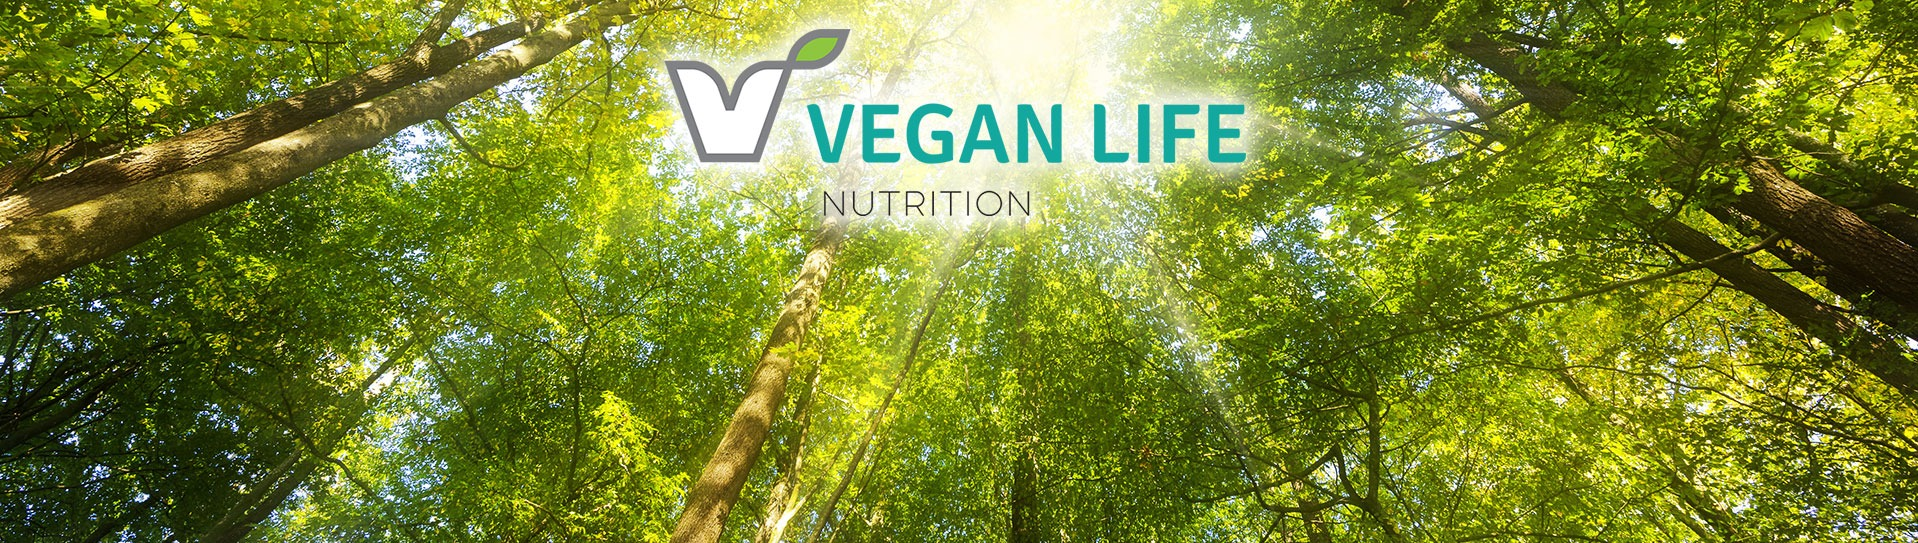 Vegan Life Nutrition photo of forest